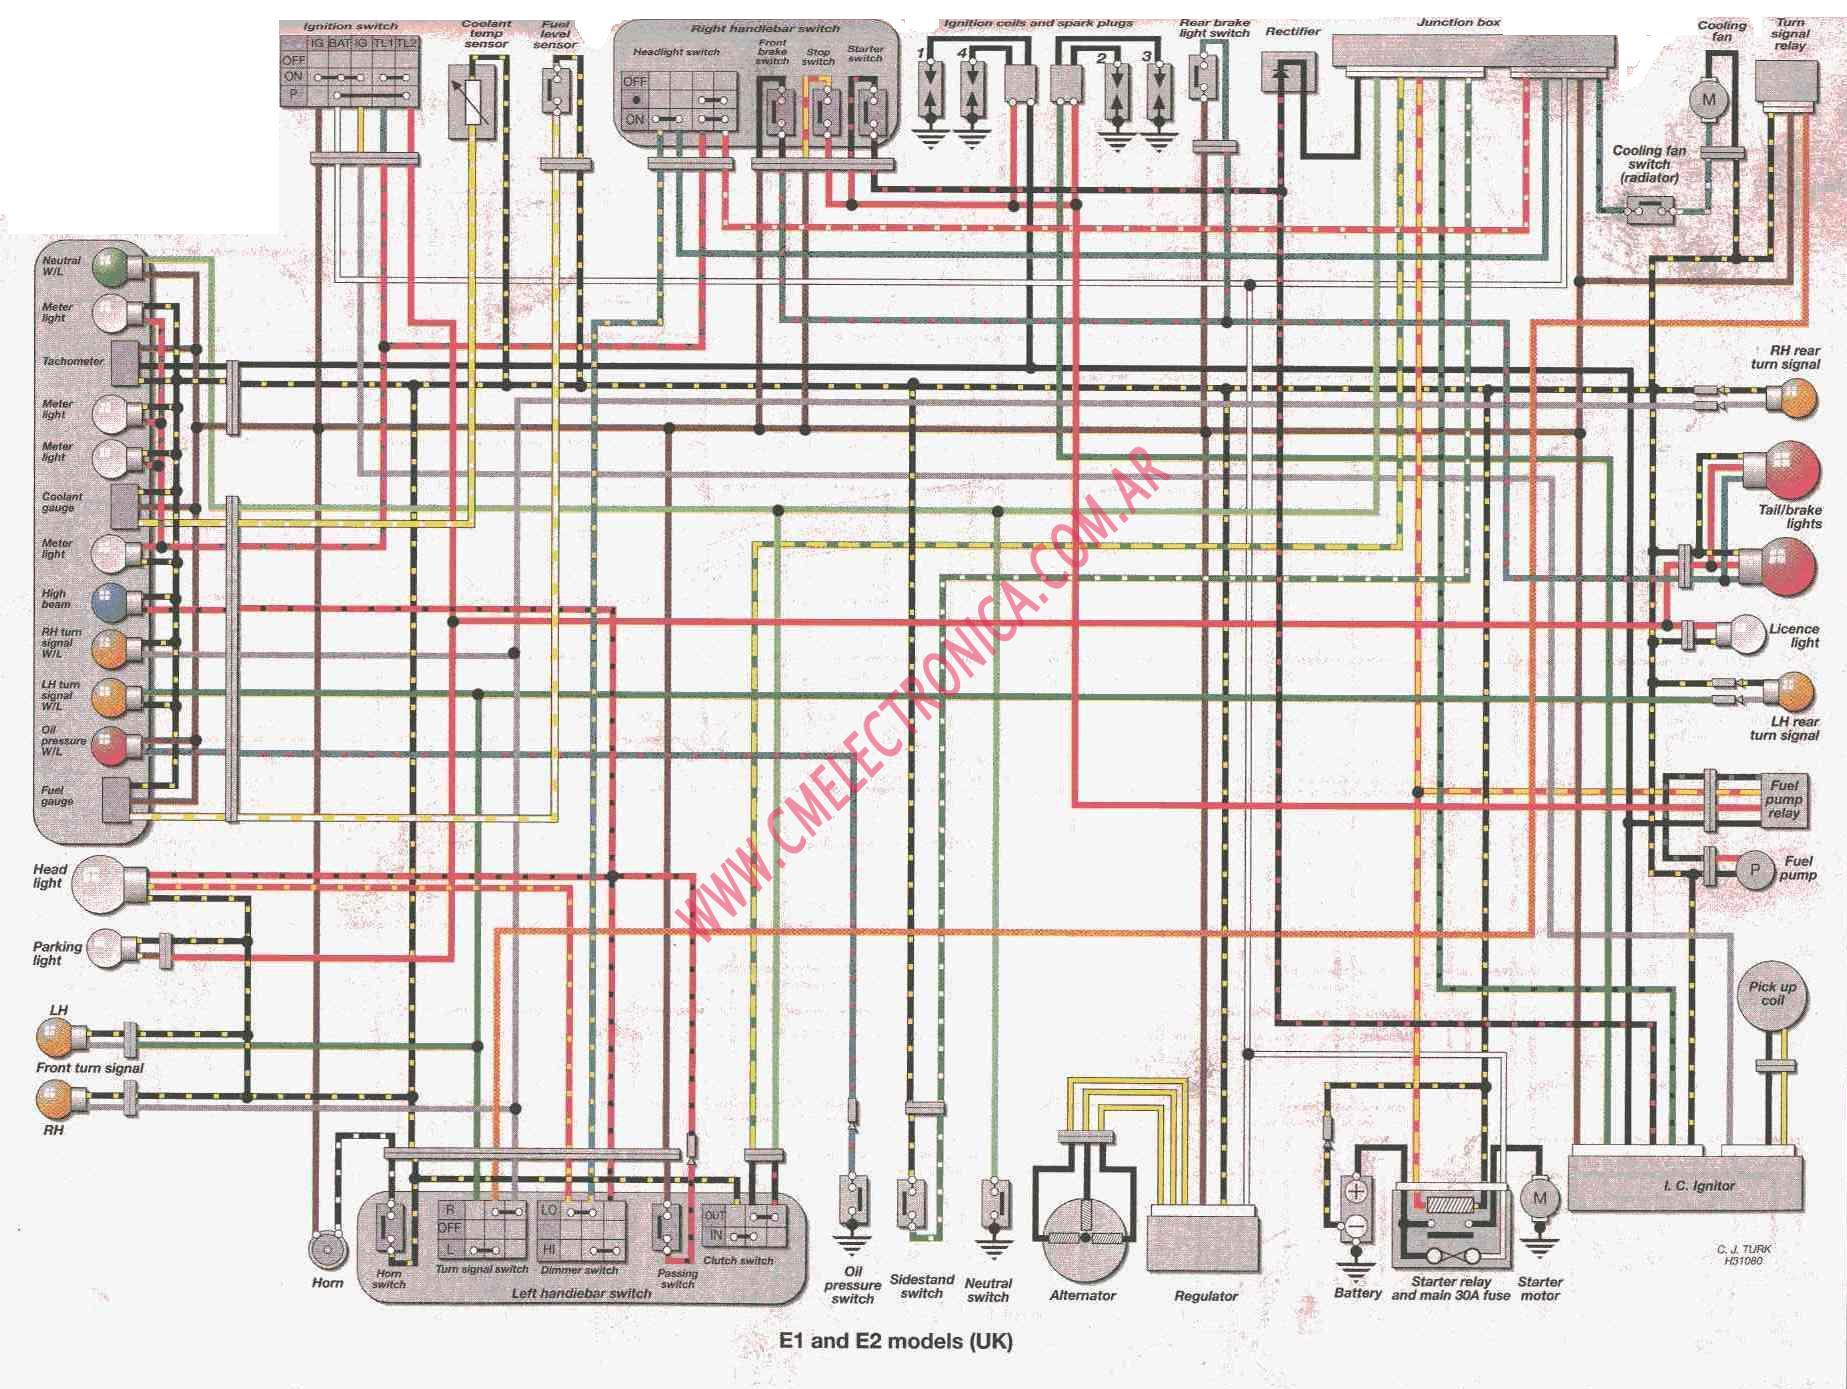 suzuki gsxr 600 wiring diagram sf 4839  as well suzuki wiring diagram also 1997 suzuki gsxr 750  suzuki gsxr 750